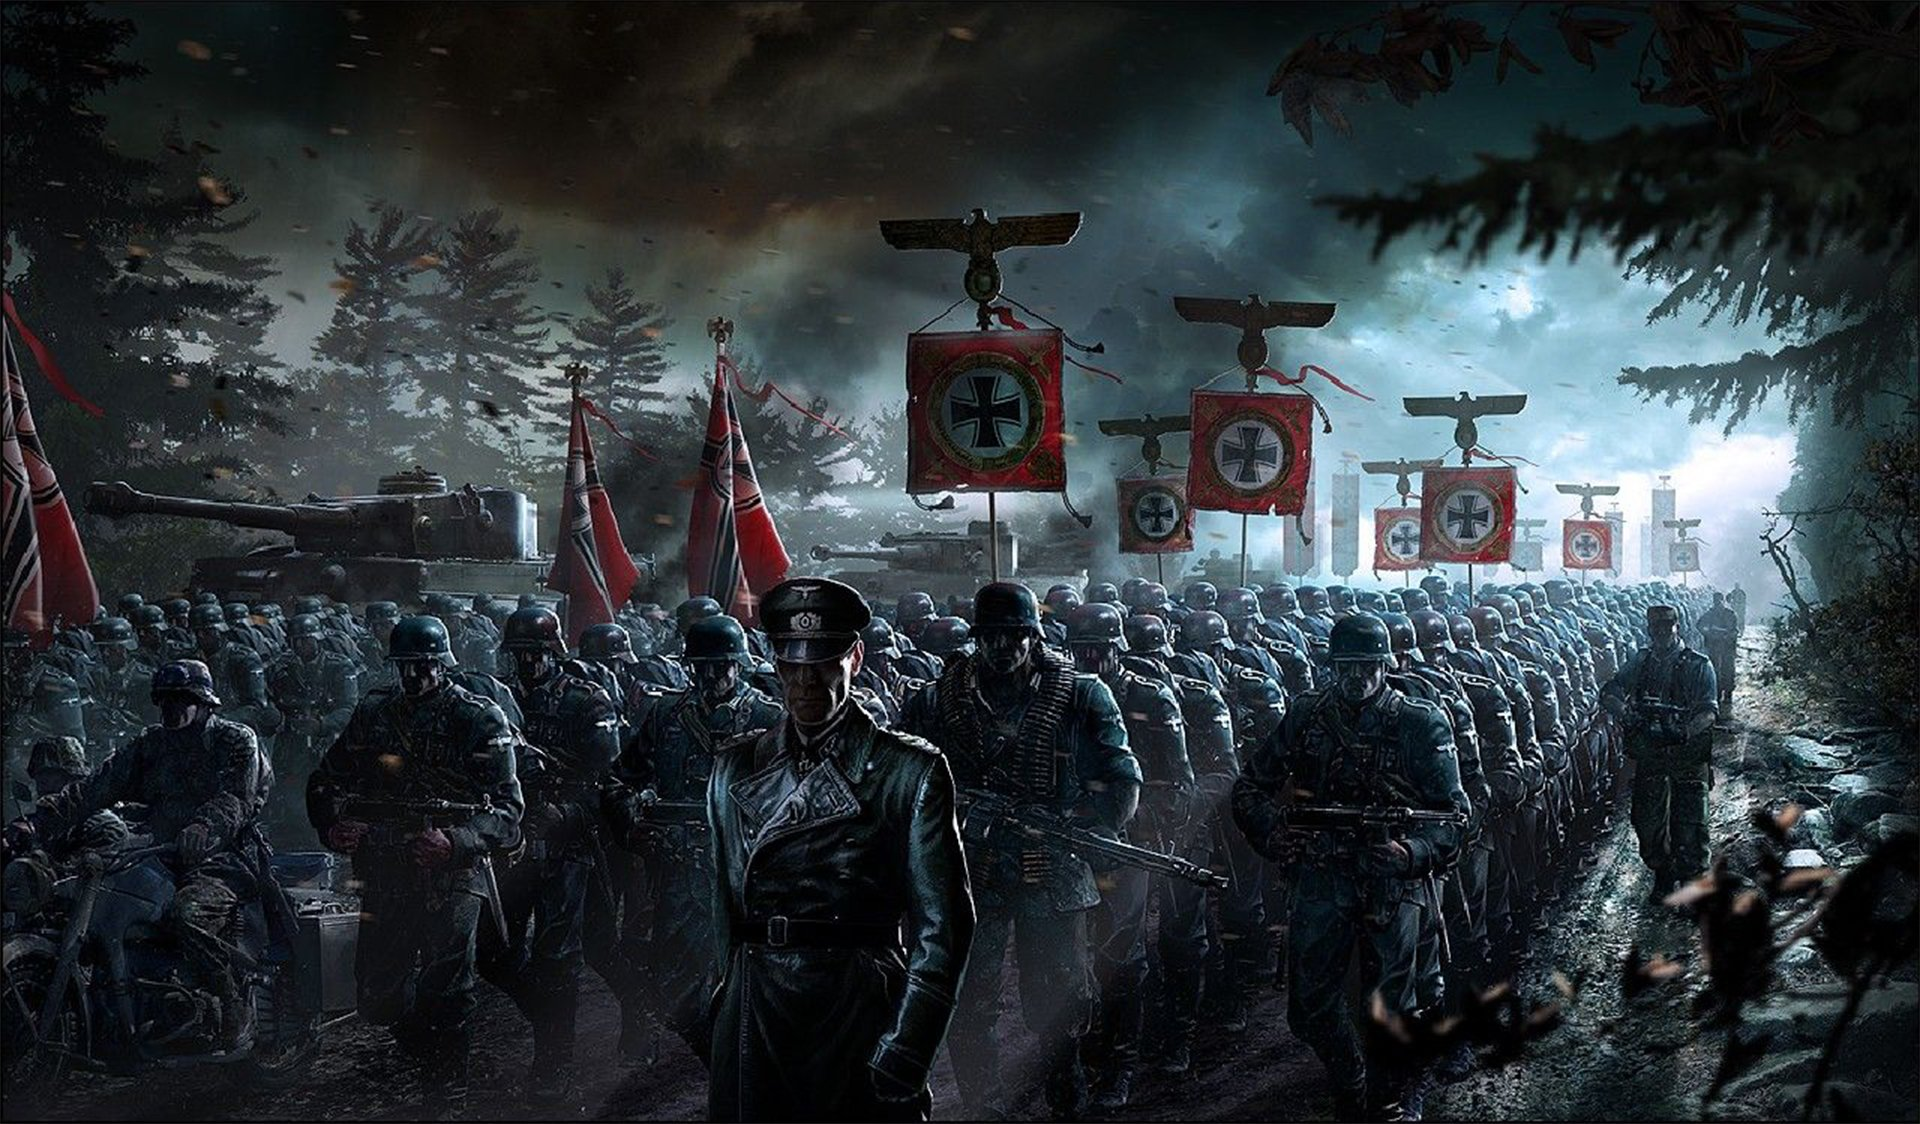 48 ww2 wallpaper screensavers on wallpapersafari - Battlefield screensaver ...